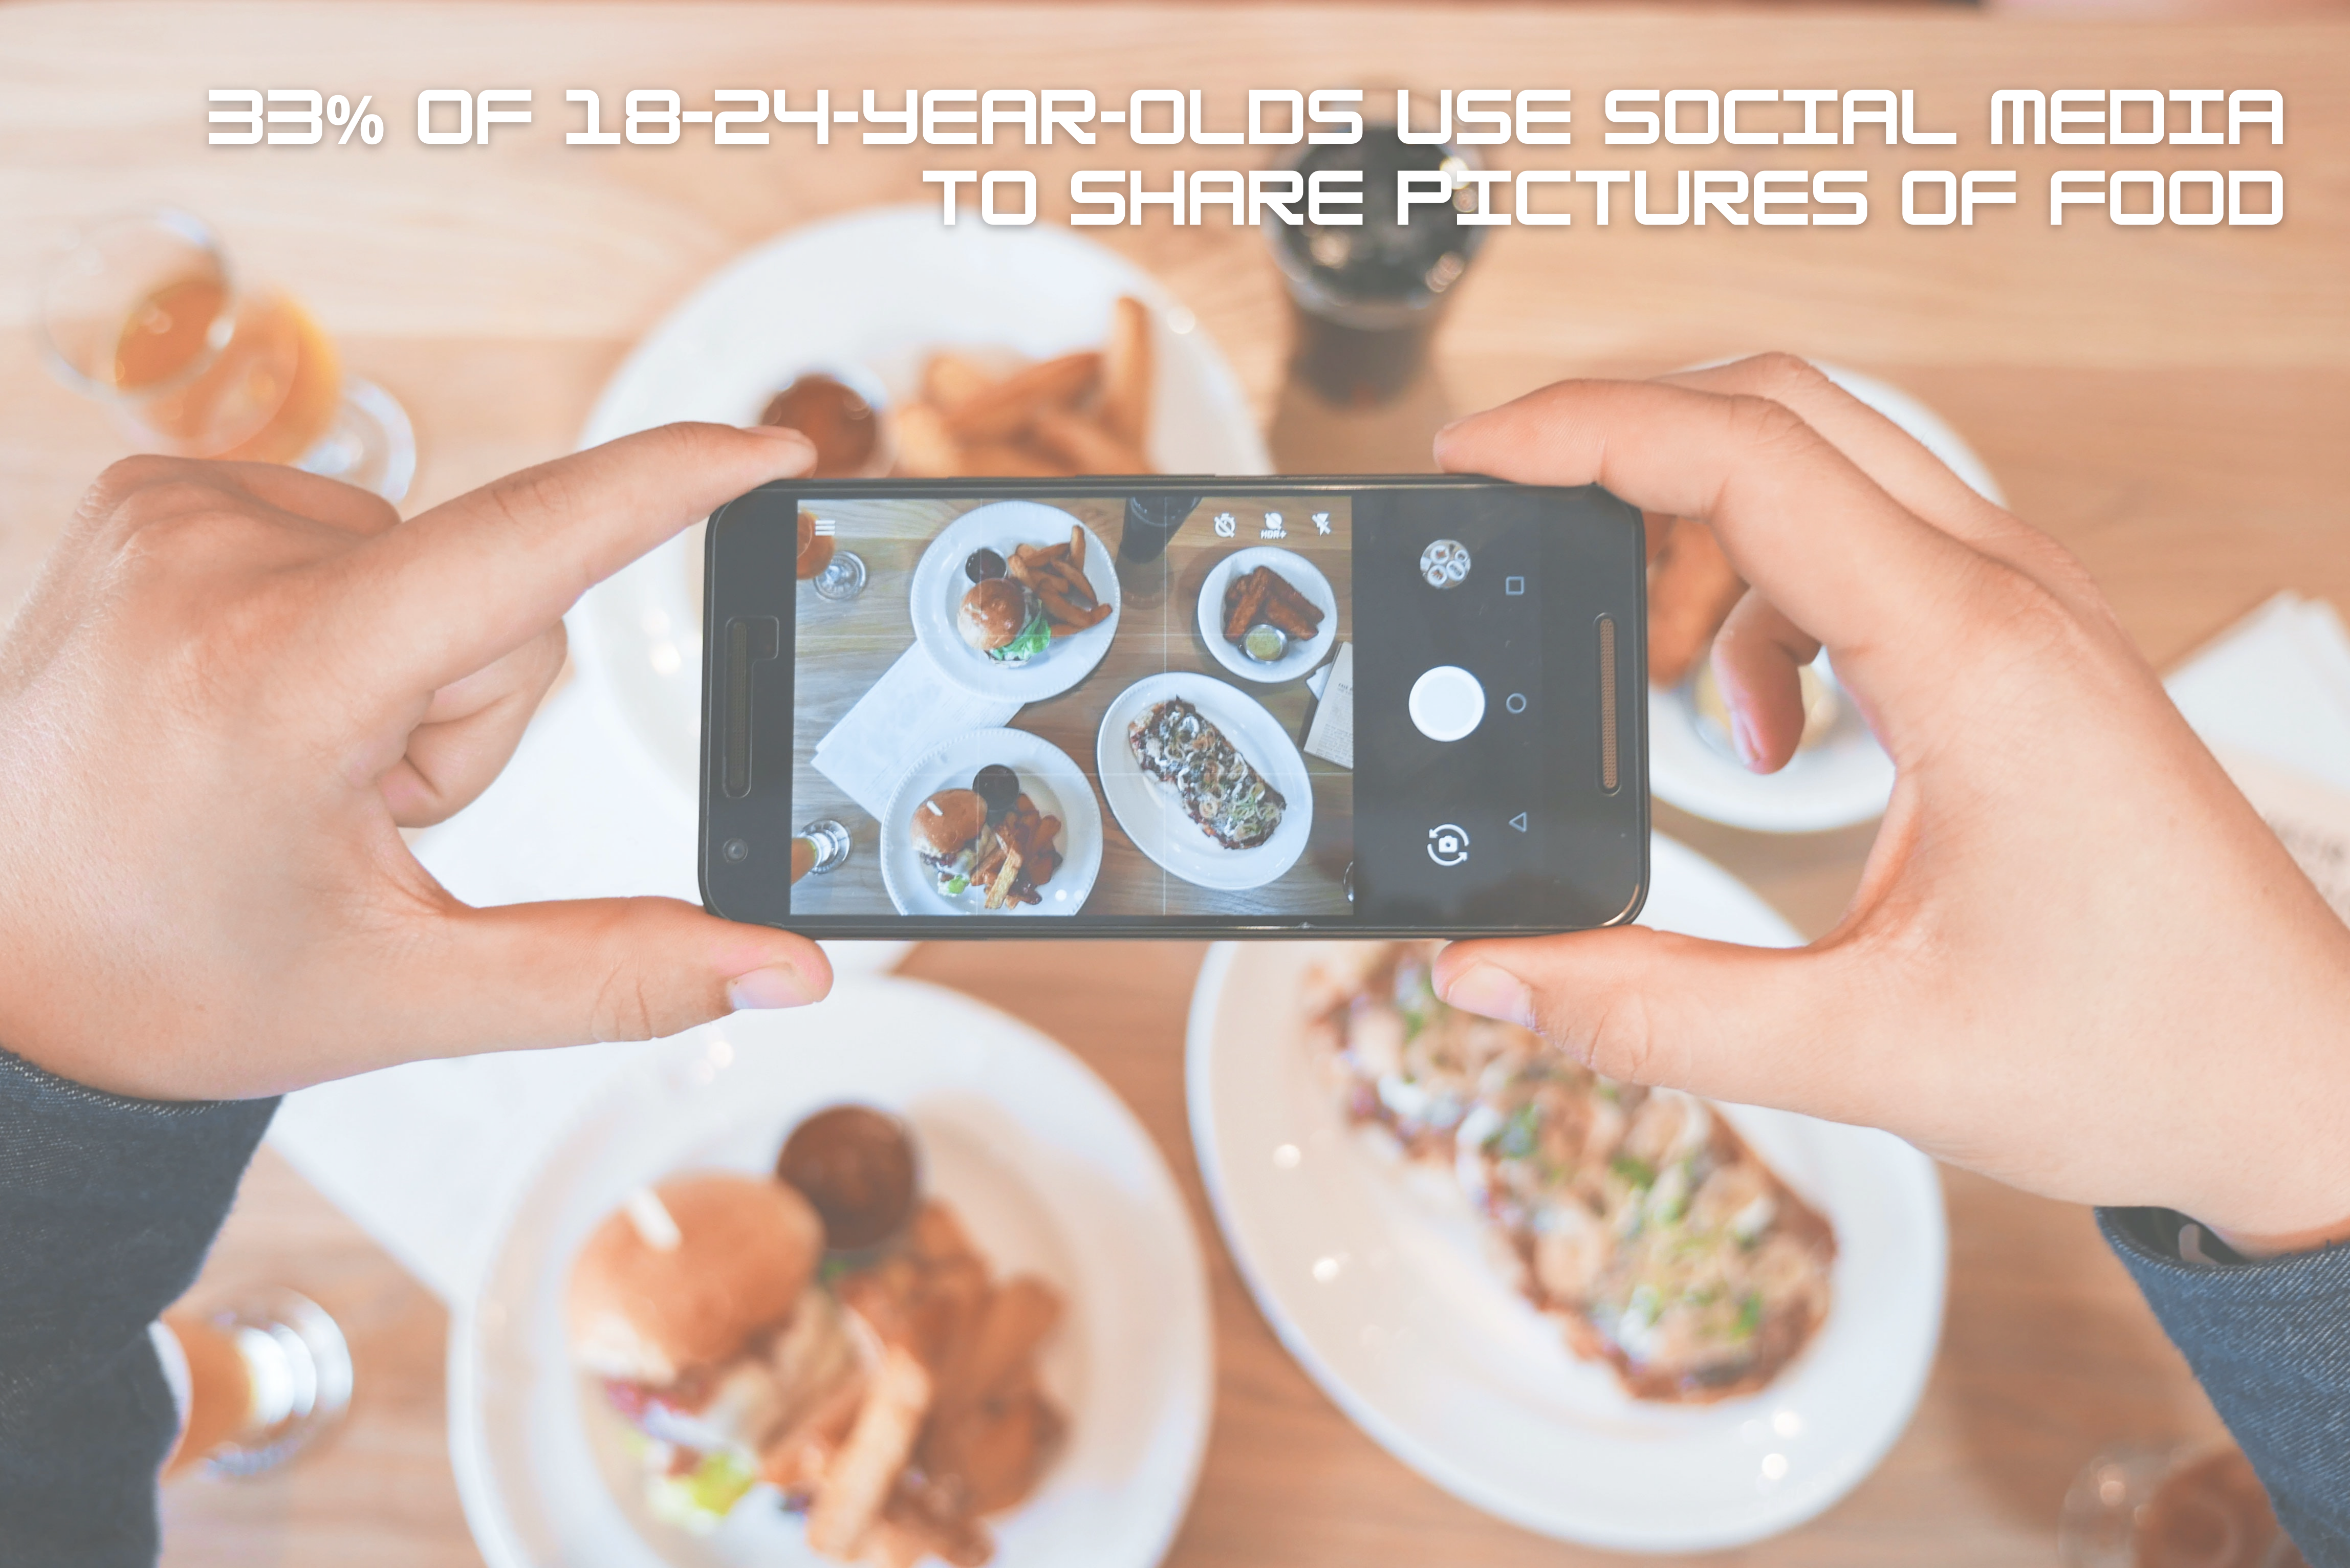 33% of 18–24-year-olds use social media to share pictures of food